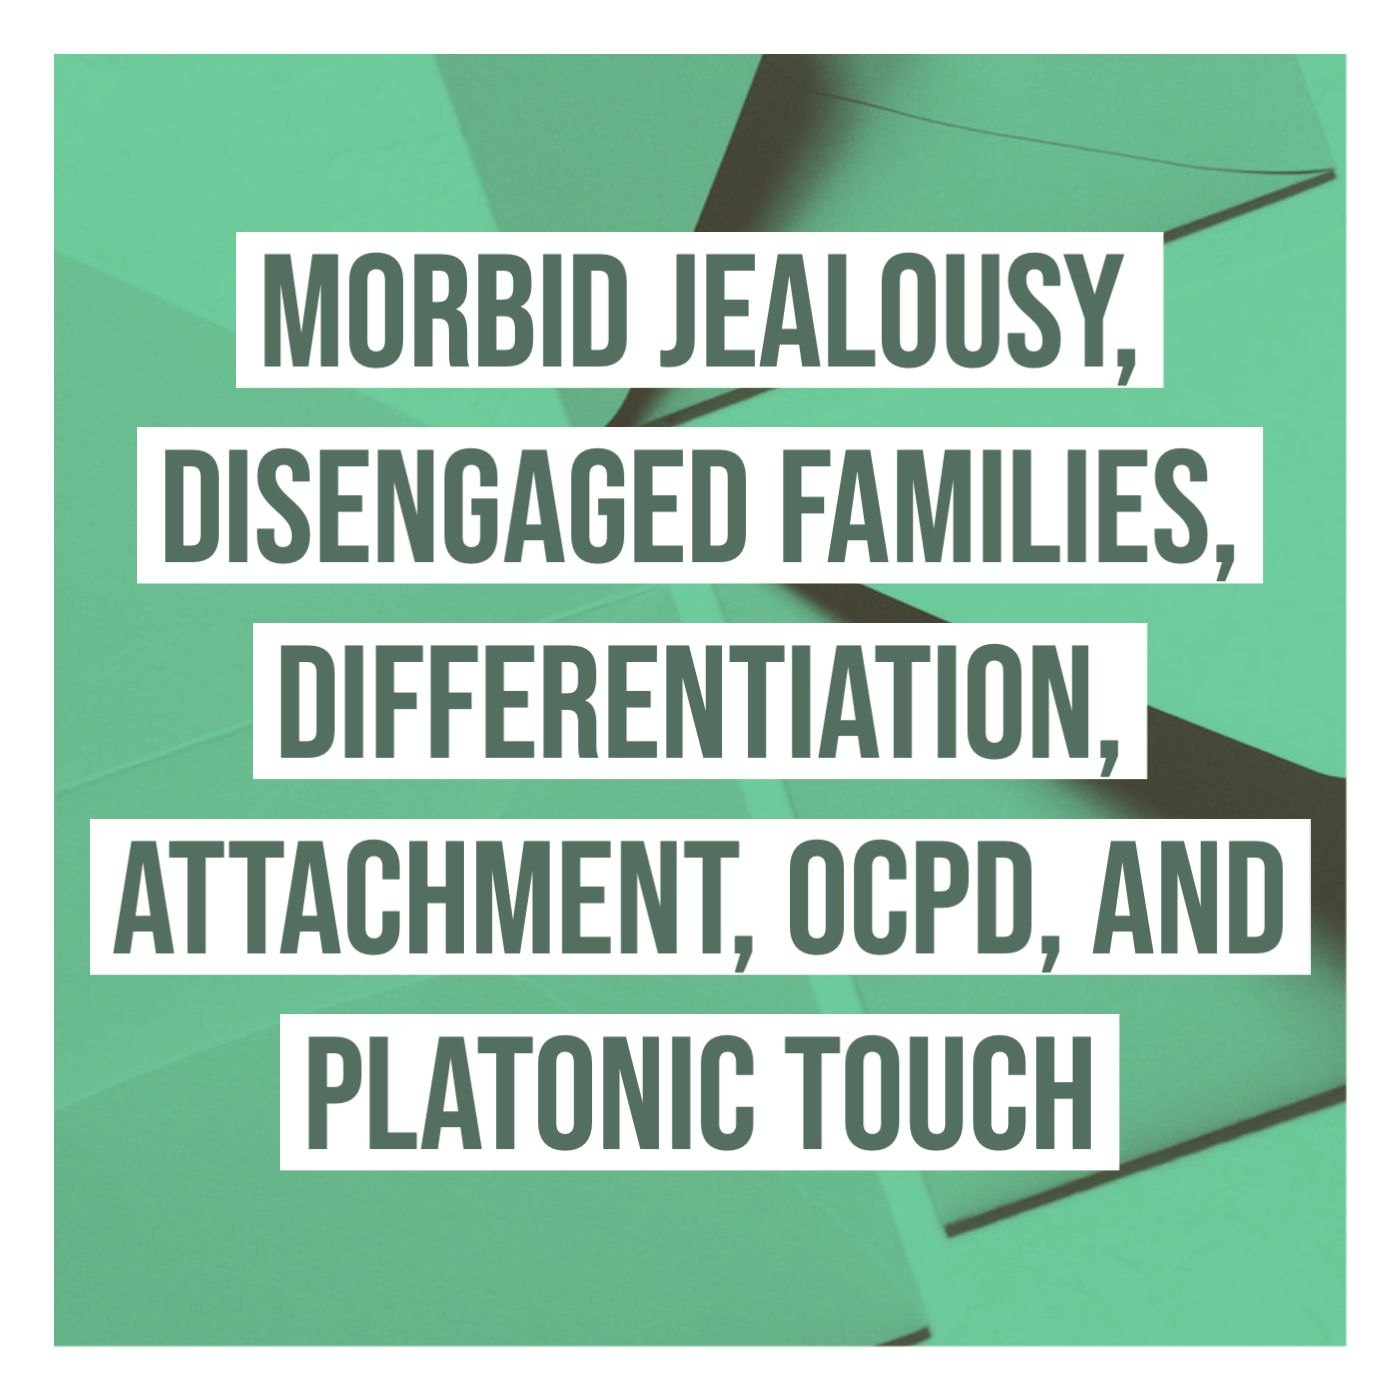 Morbid Jealousy, Disengaged Families, Differentiation, Attachment, OCPD, and Platonic Touch